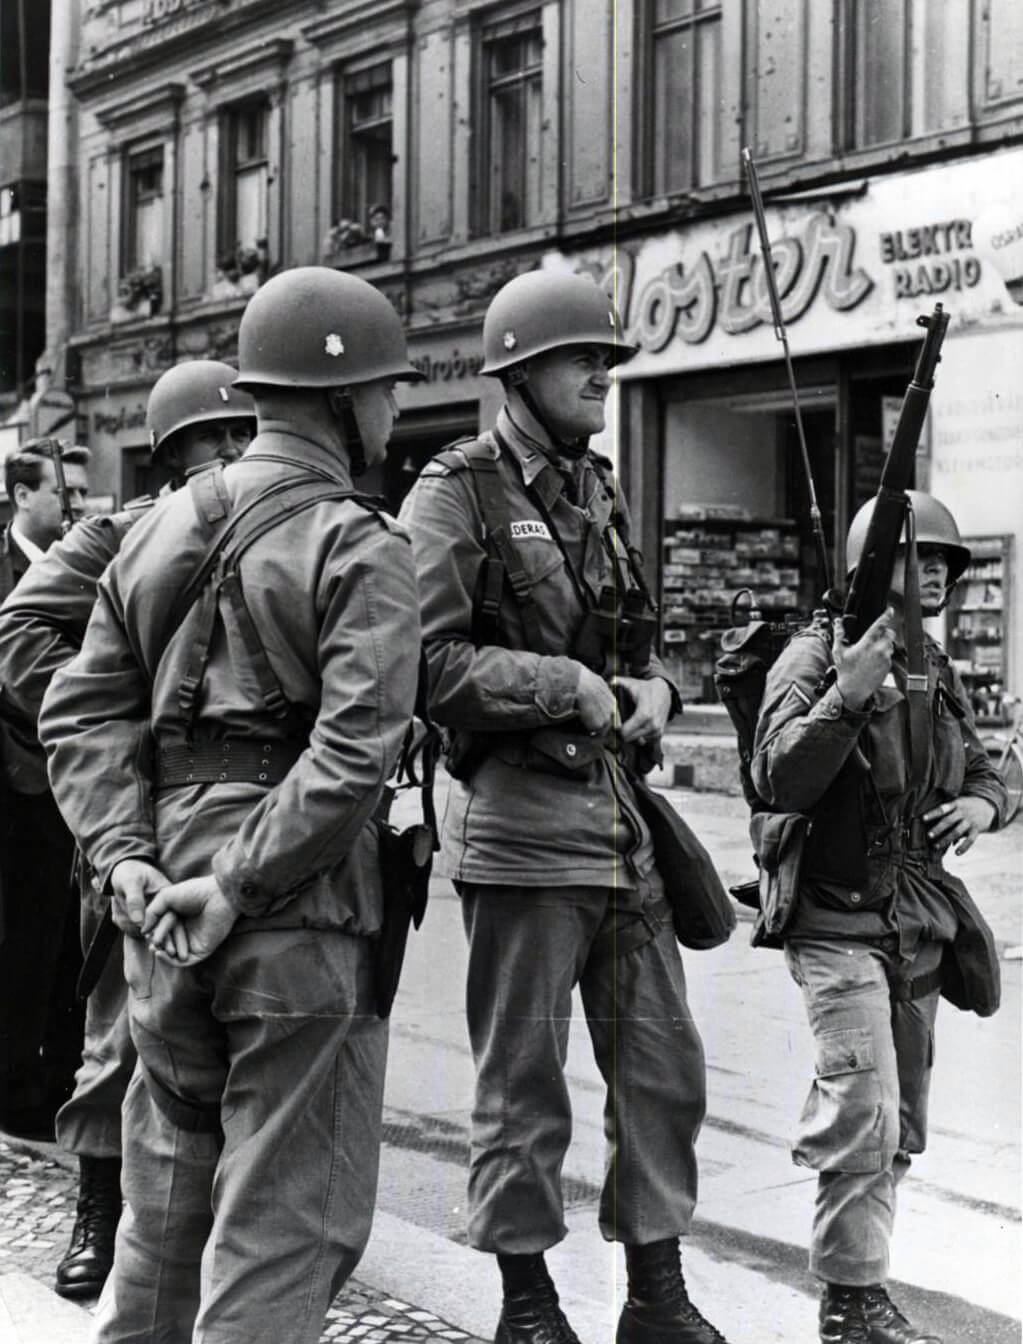 Soldiers with M1 rifle at Berlin wall construction